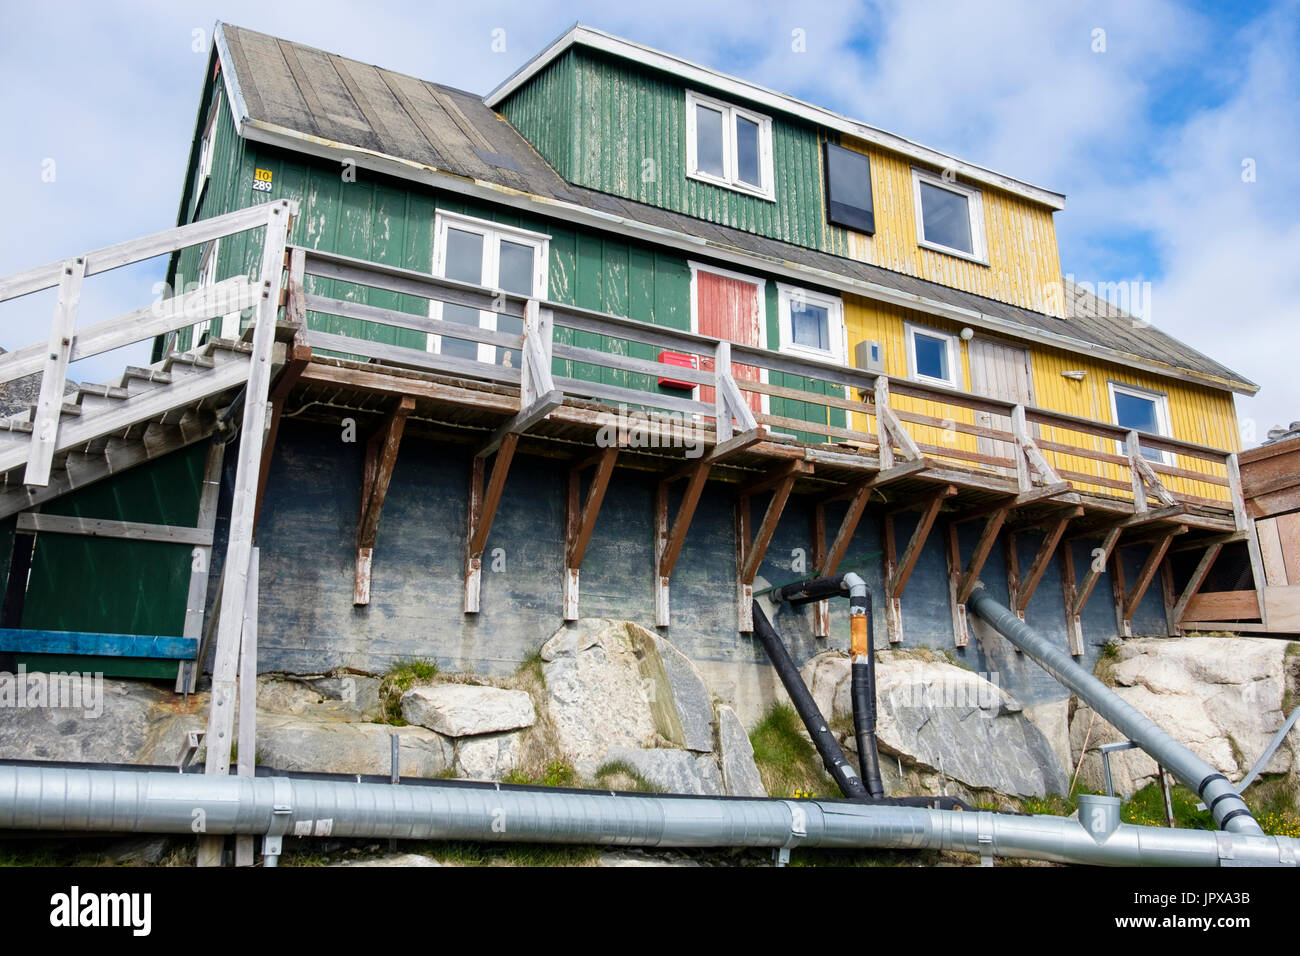 Typical Inuit houses built from wood and concrete with overground pipes for water and waste. Paamiut (Frederikshåb), Stock Photo